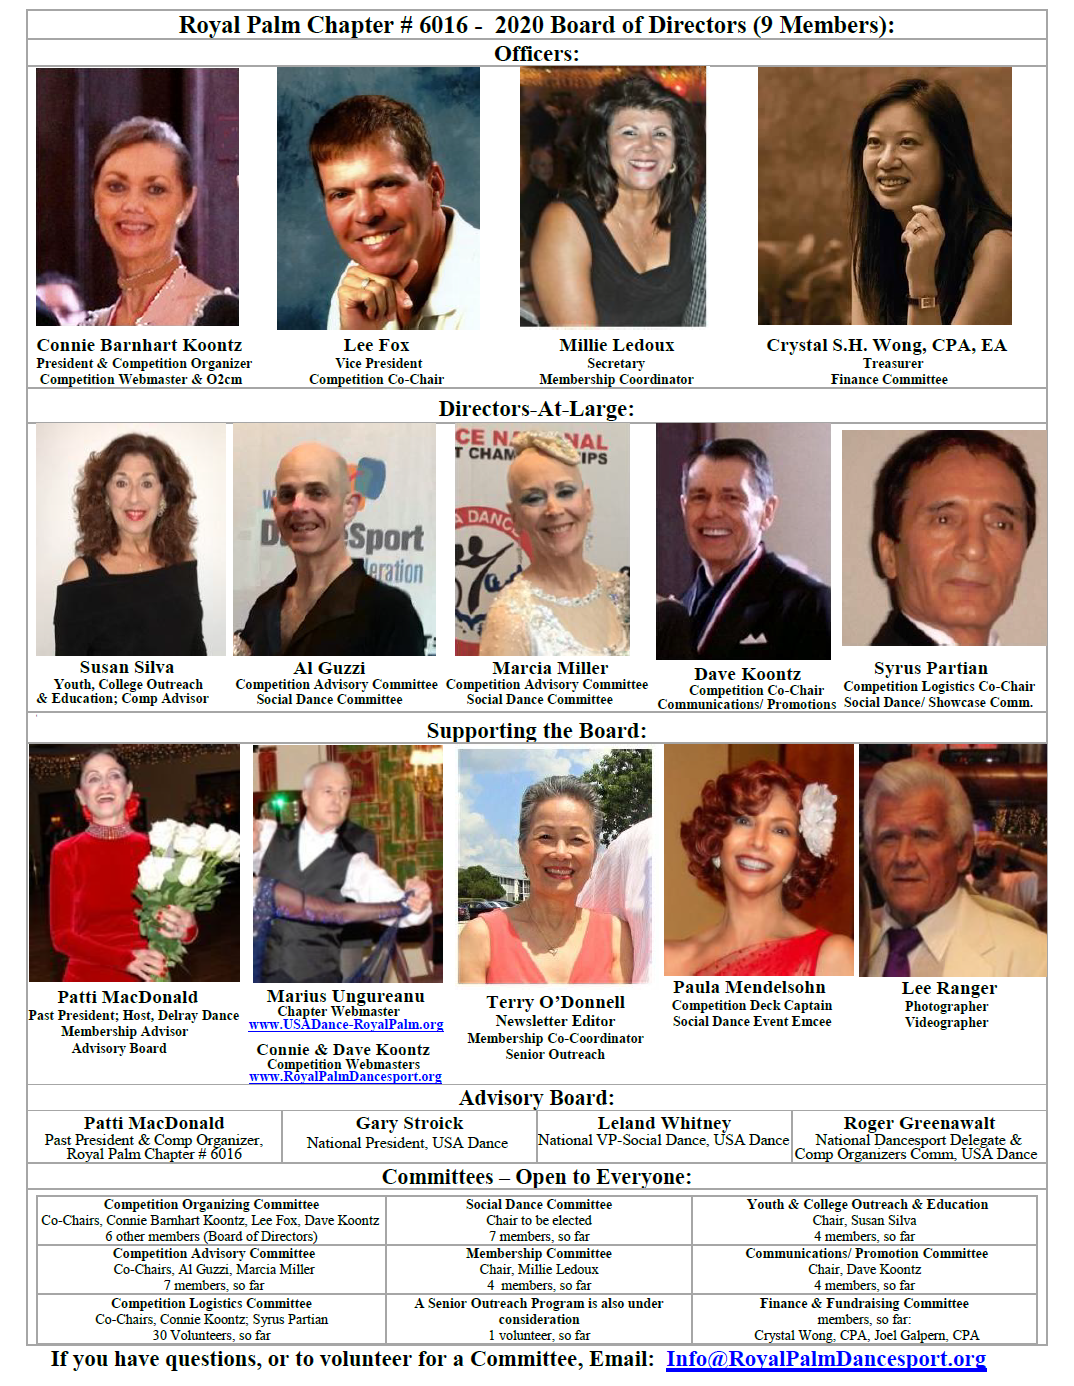 2020 Board of Directors & Leadership Team - USA Dance, Royal Palm Chapter # 6016